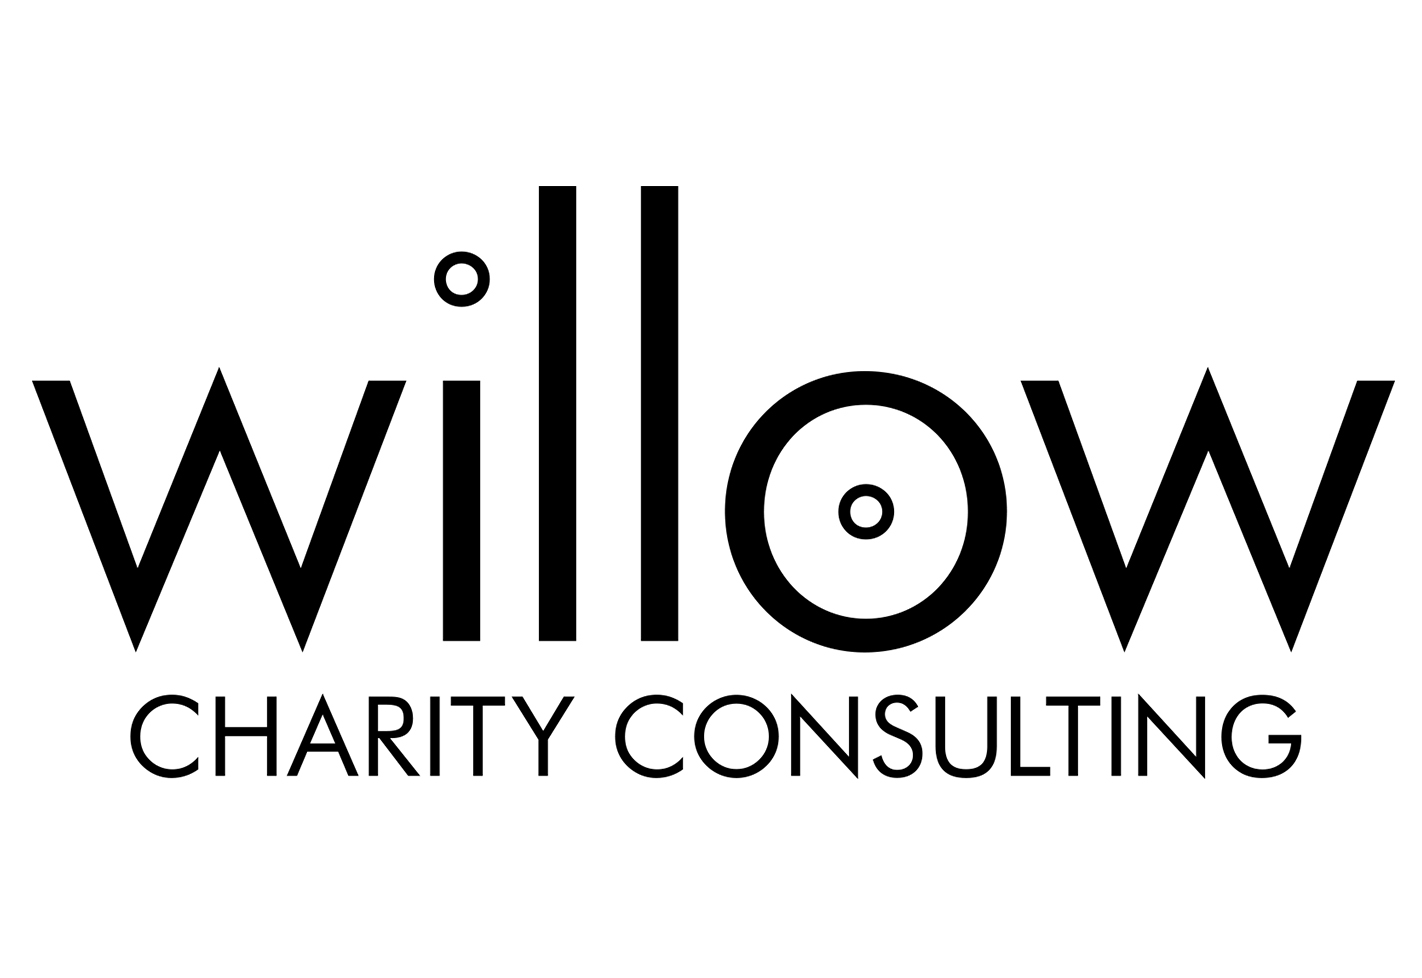 Willow Charity Consulting